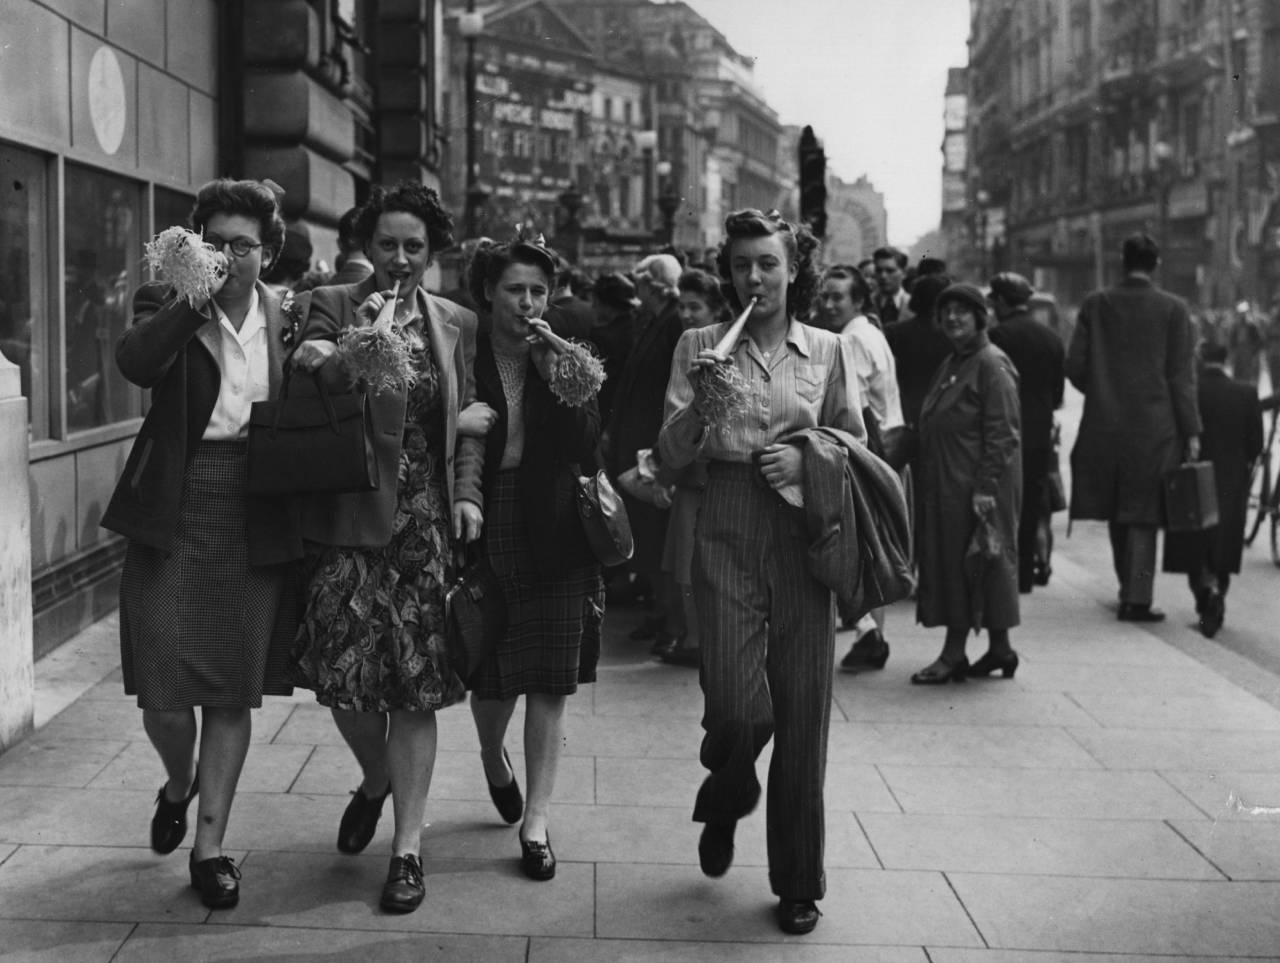 8th May 1945: VE Day revellers blowing party trumpets in Piccadilly, London. (Photo by Topical Press Agency/Getty Images)